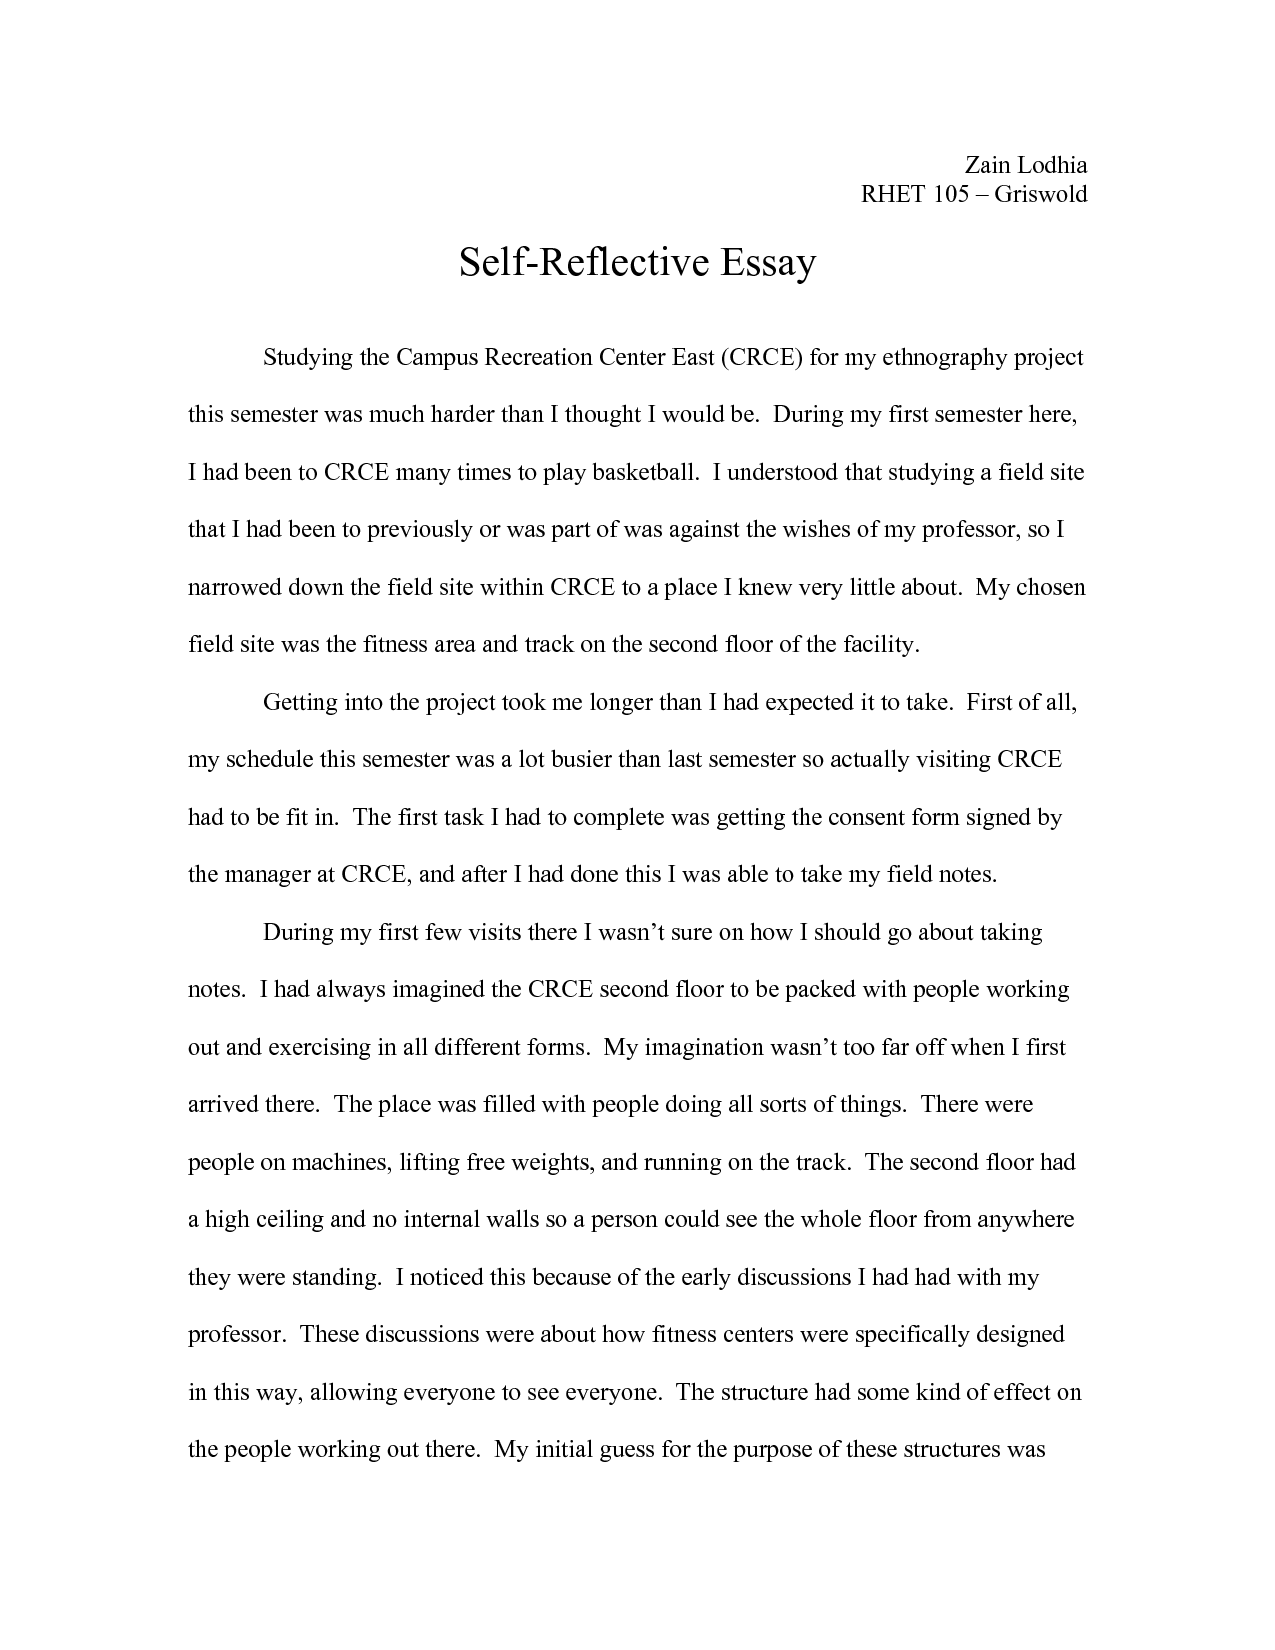 003 Qal0pwnf46 Reflective Essays Beautiful Essay Examples Personal Pdf About Life Format Full